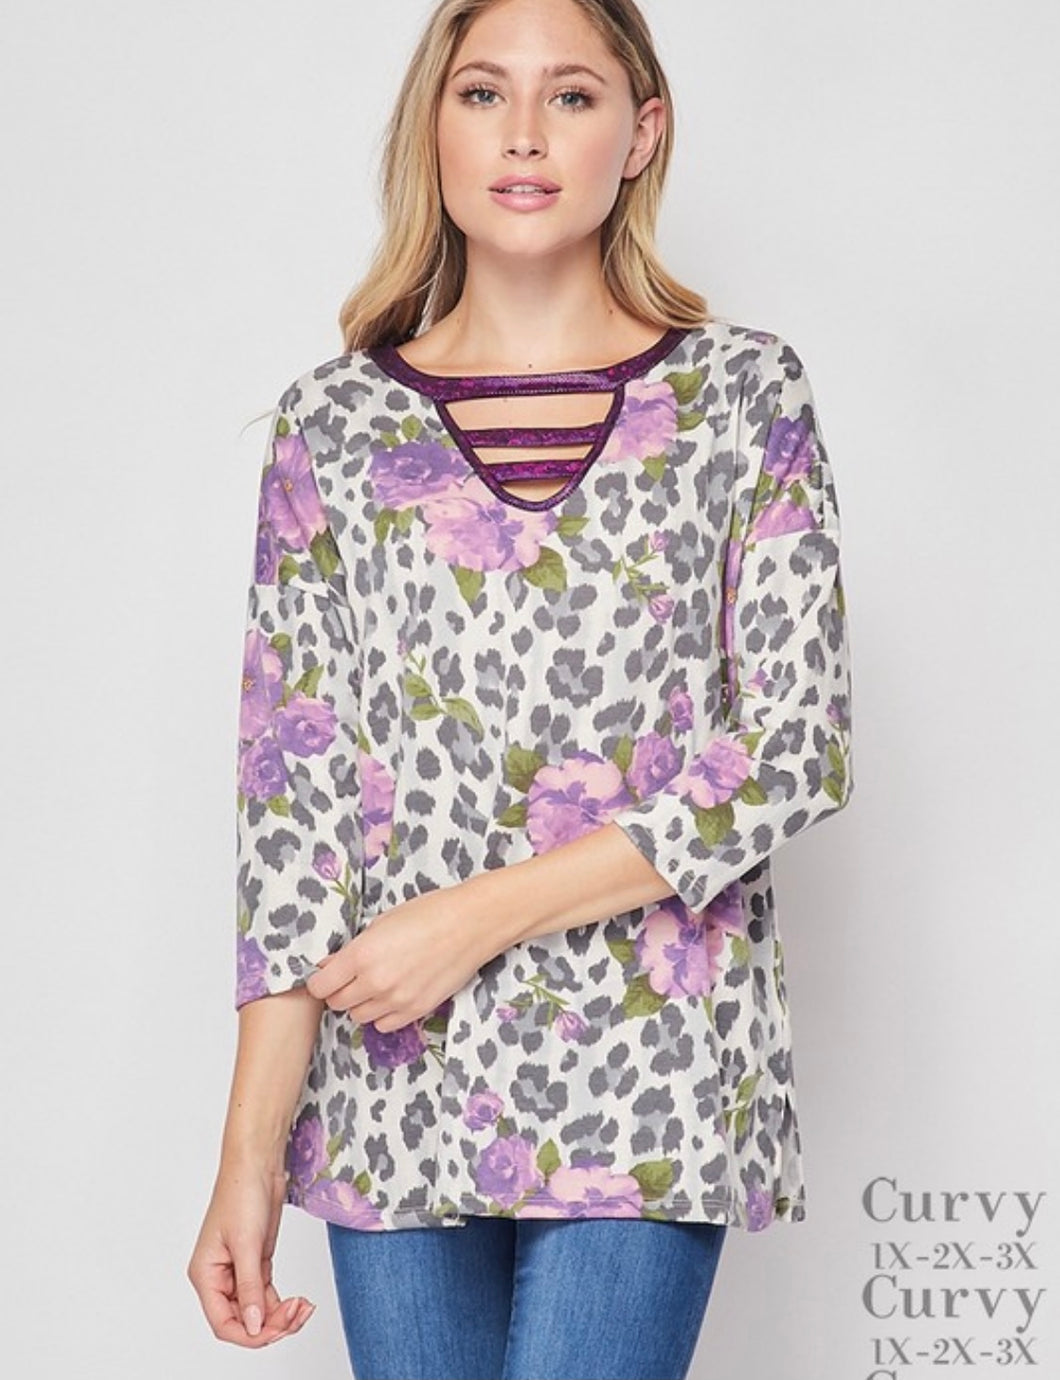 Curvy Gal Leopard Flower Top - Purple